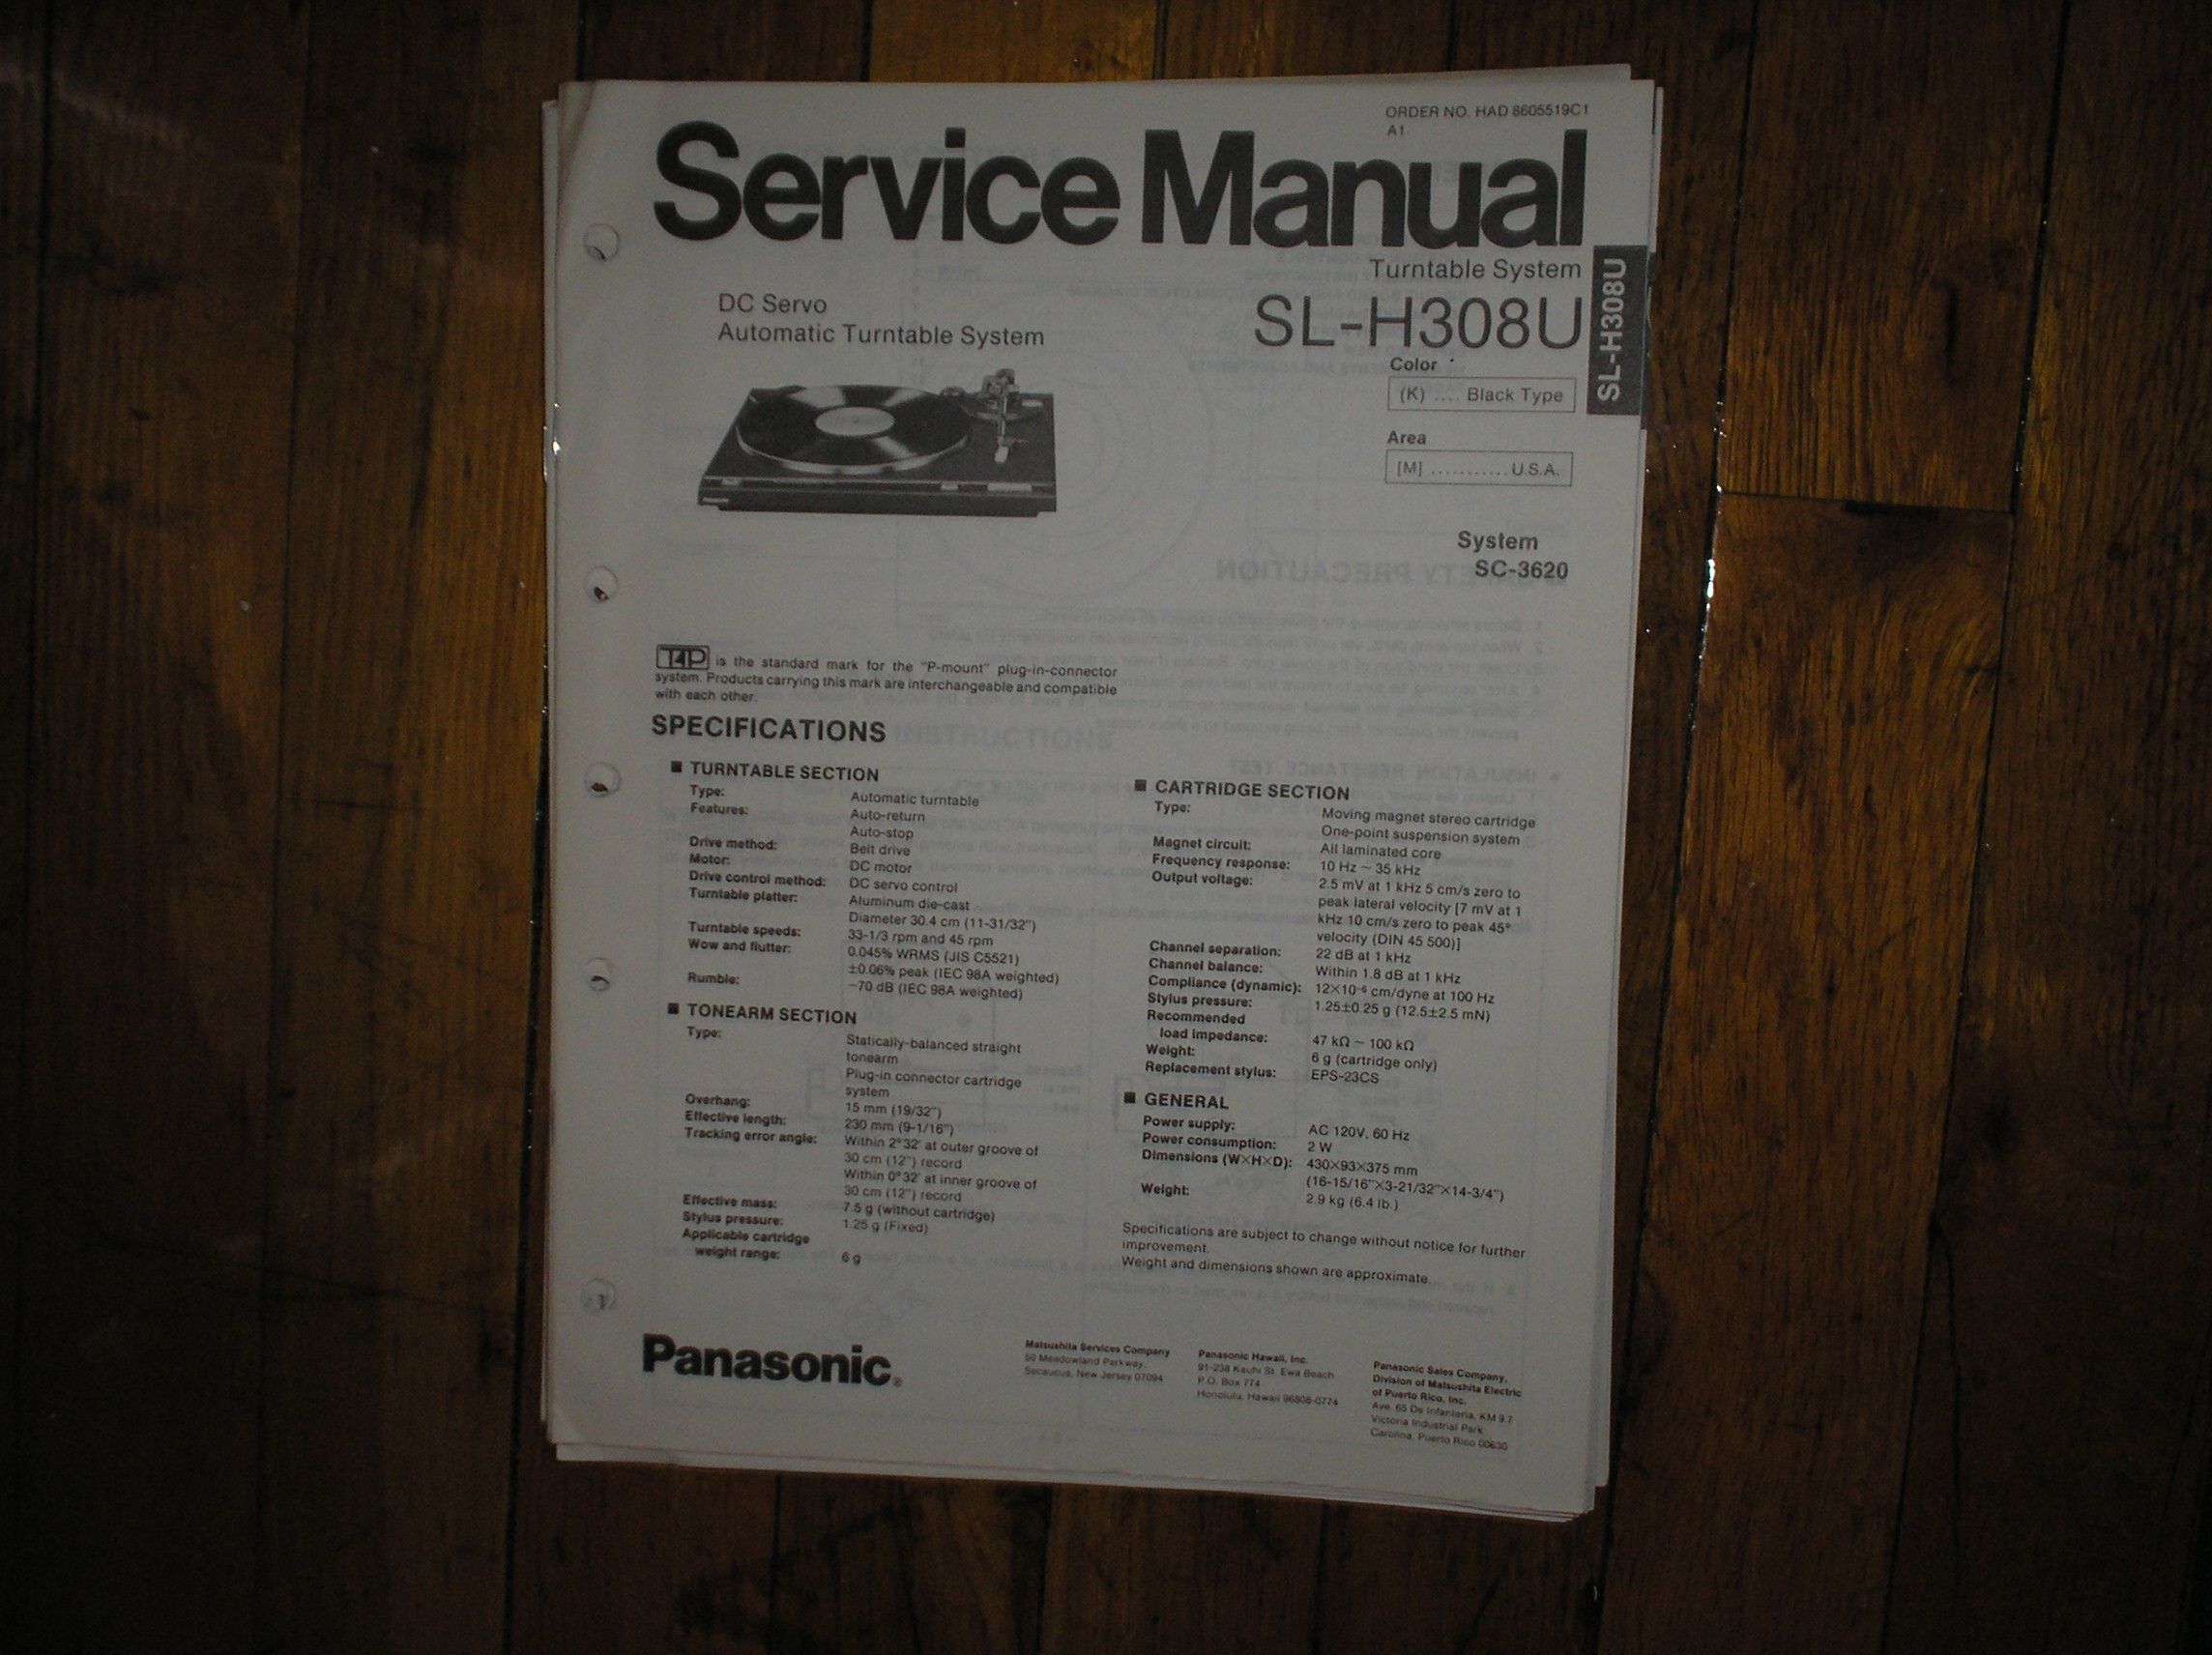 SL-H308U Turntable Service Manual